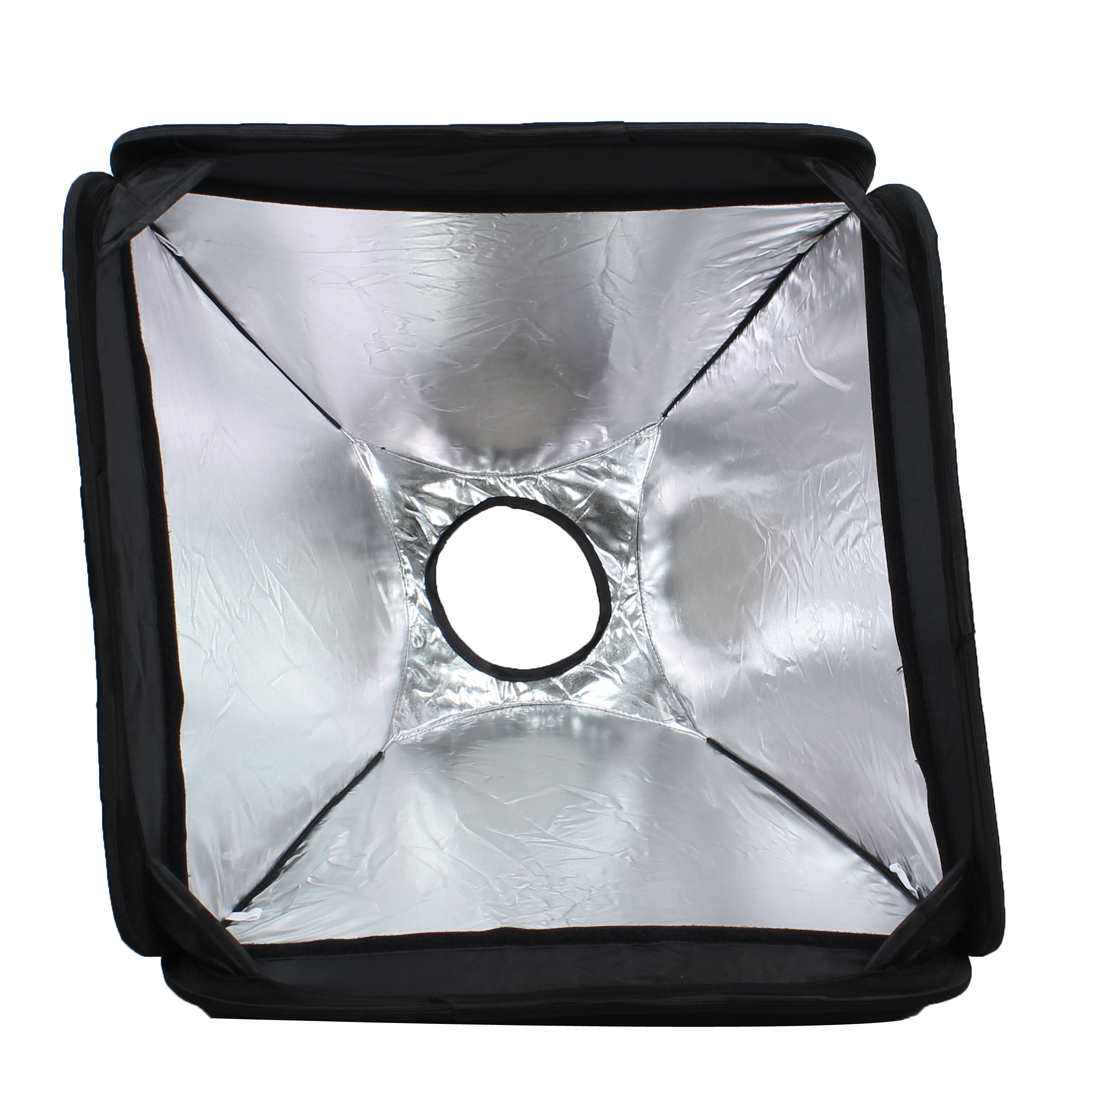 Black Flash Soft Box Diffuser 40cm x 40cm for Digital SLR Camera